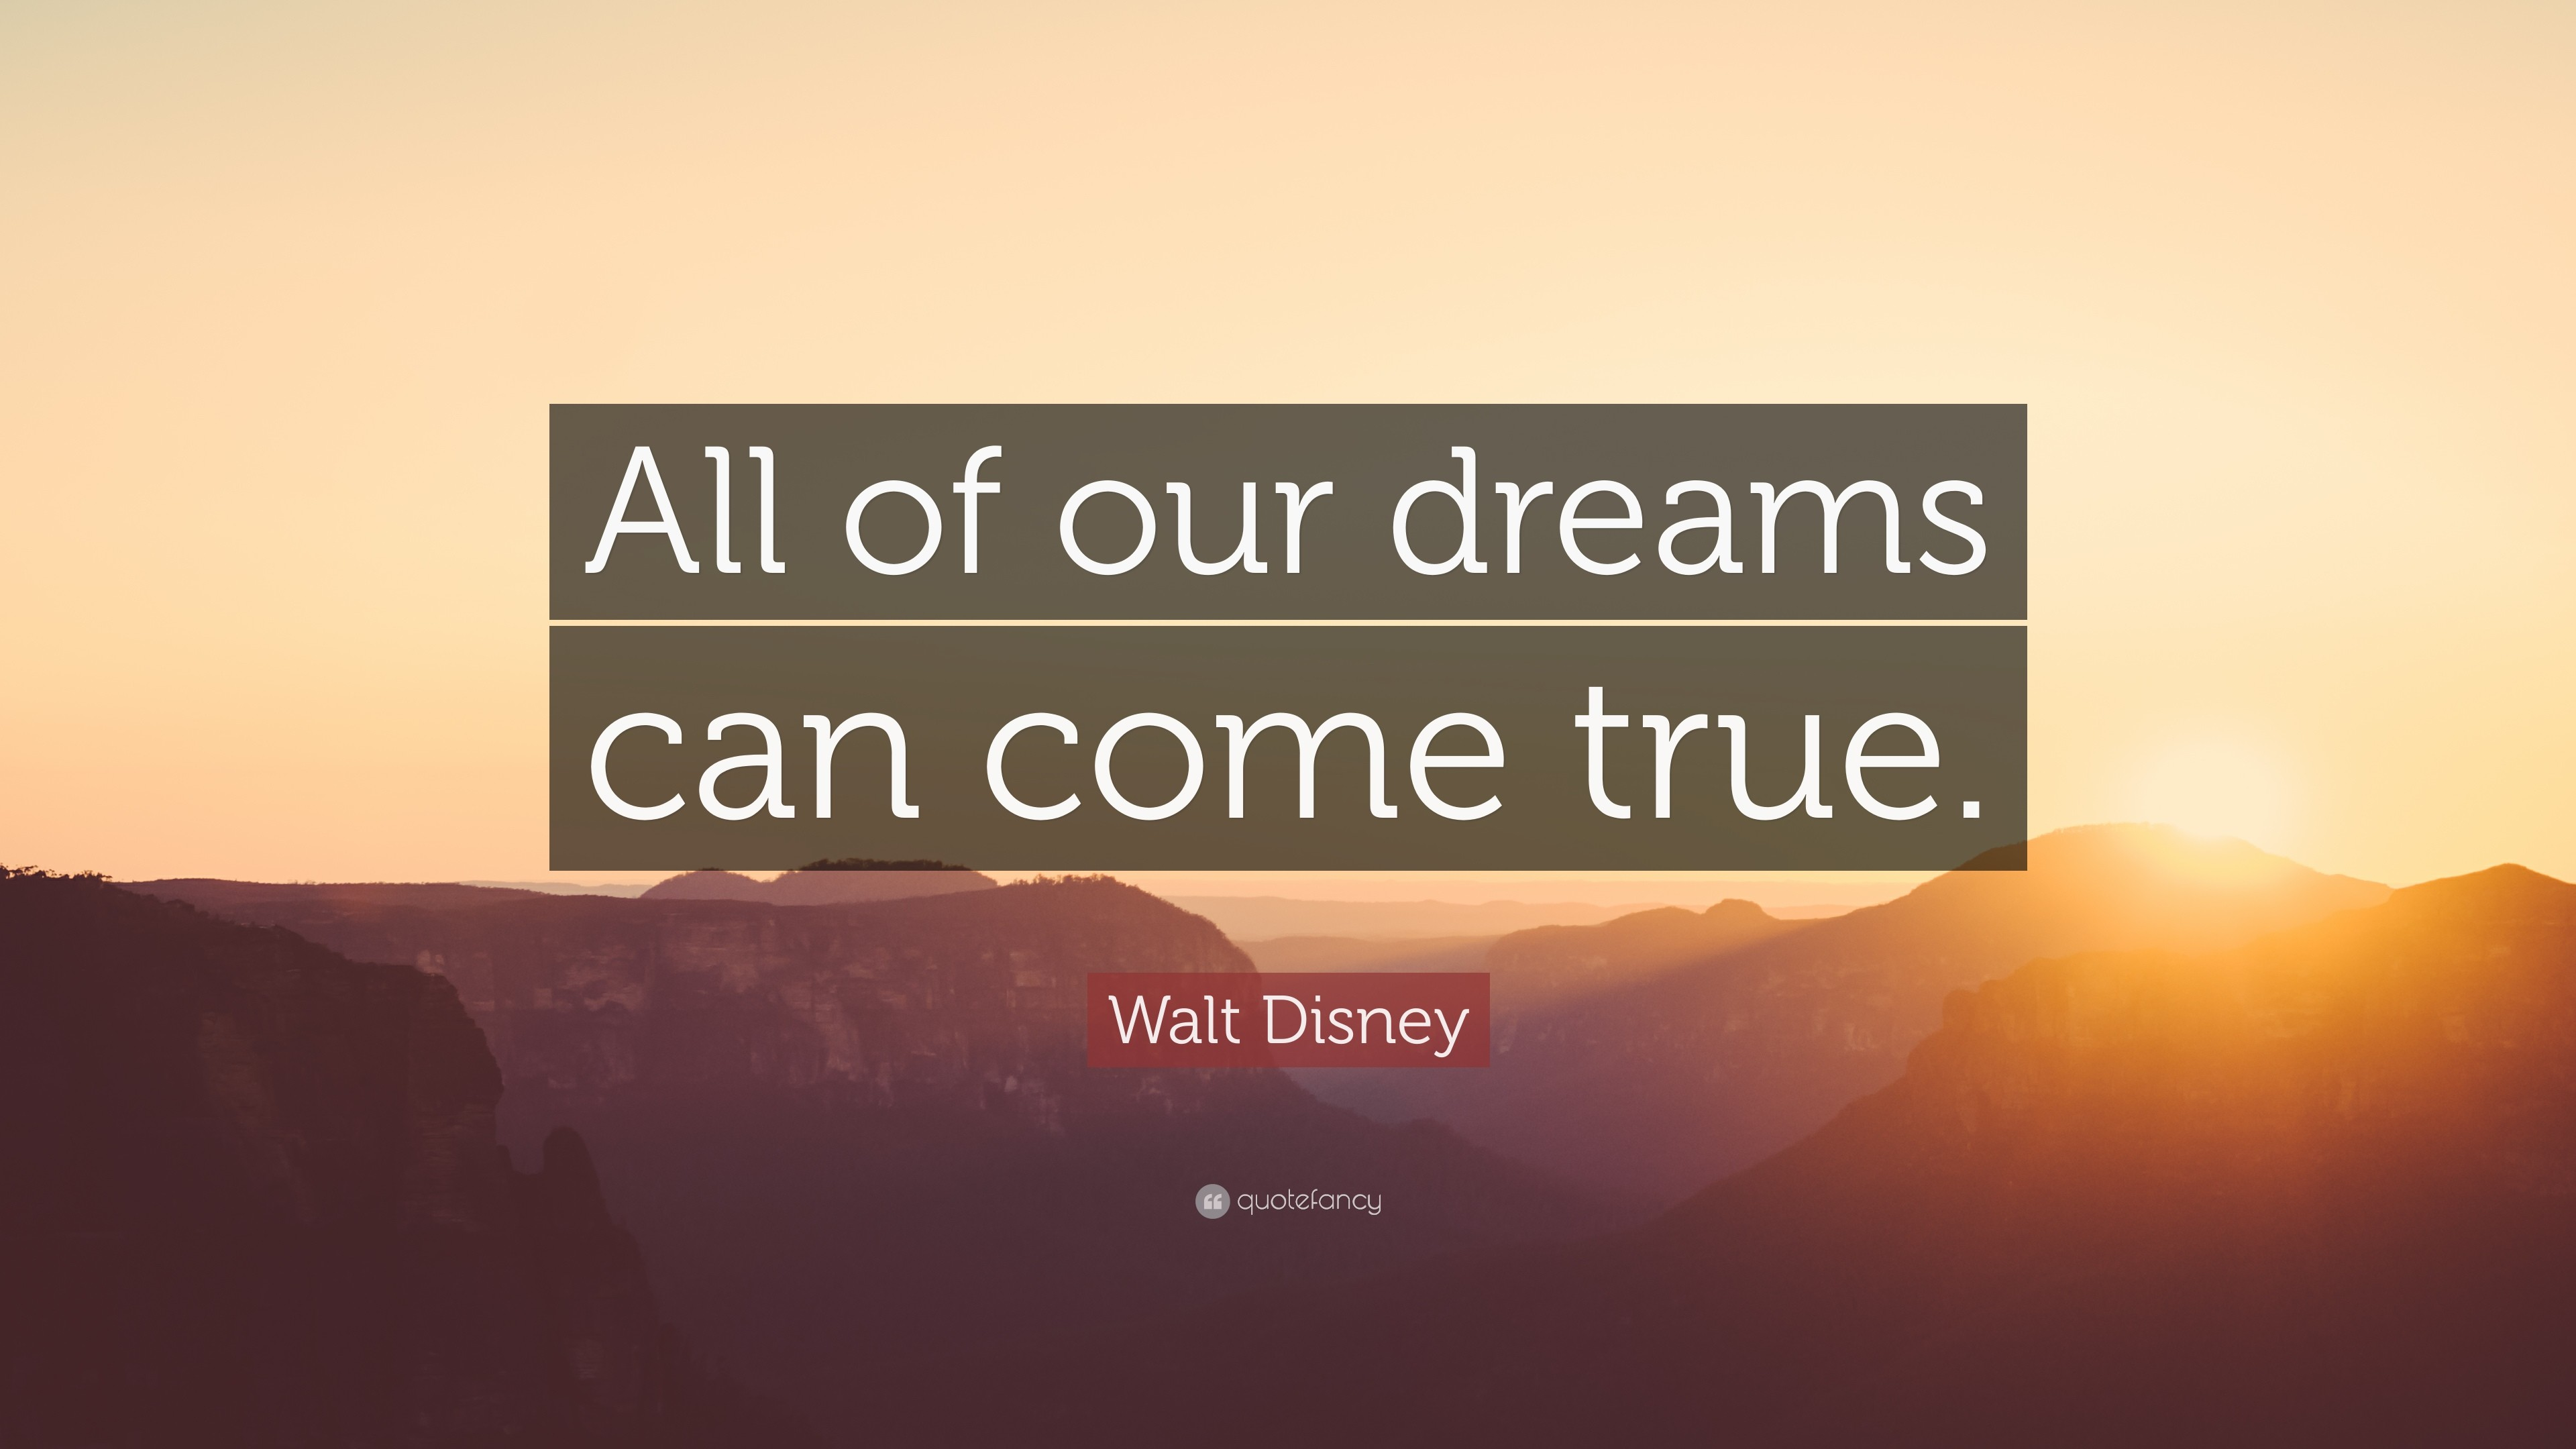 … wallpapers hd; walt disney quote all of our dreams can come true 21 …